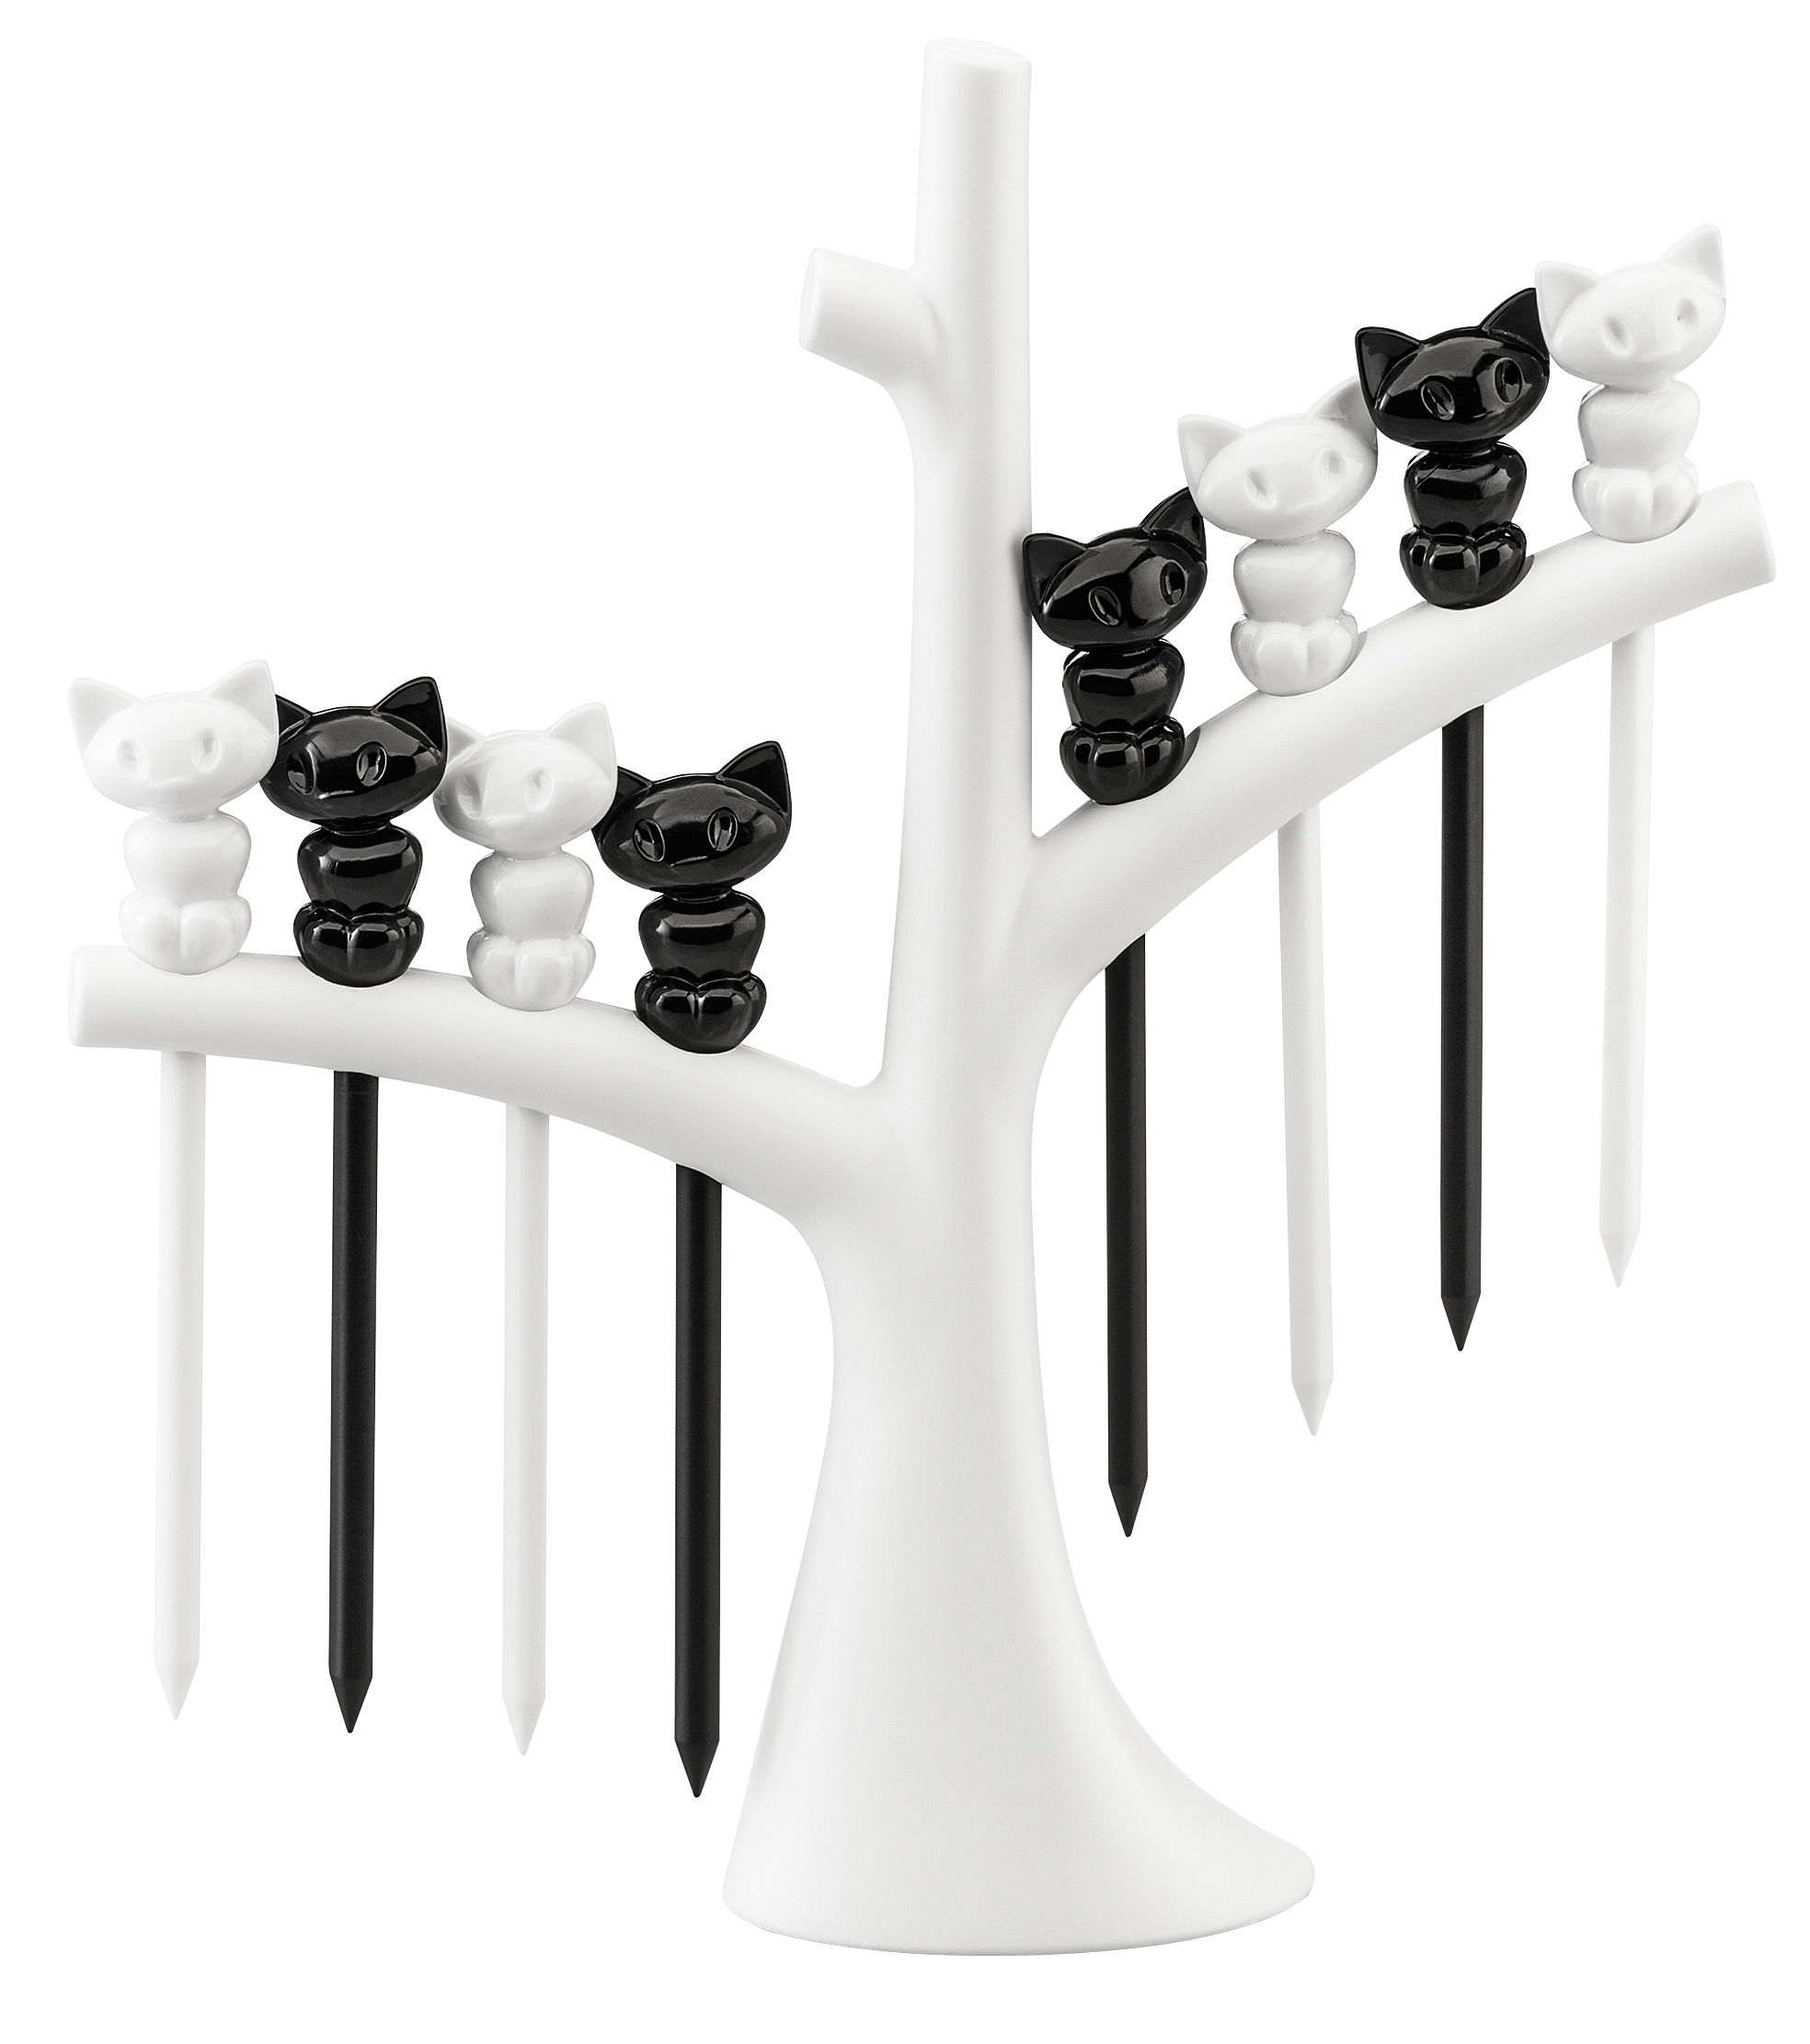 Tableware - Wine Accessories - Miaou Appetiser skewers - / Set of 8 with tree stand by Koziol - White tree / Black and white cats - Plastic